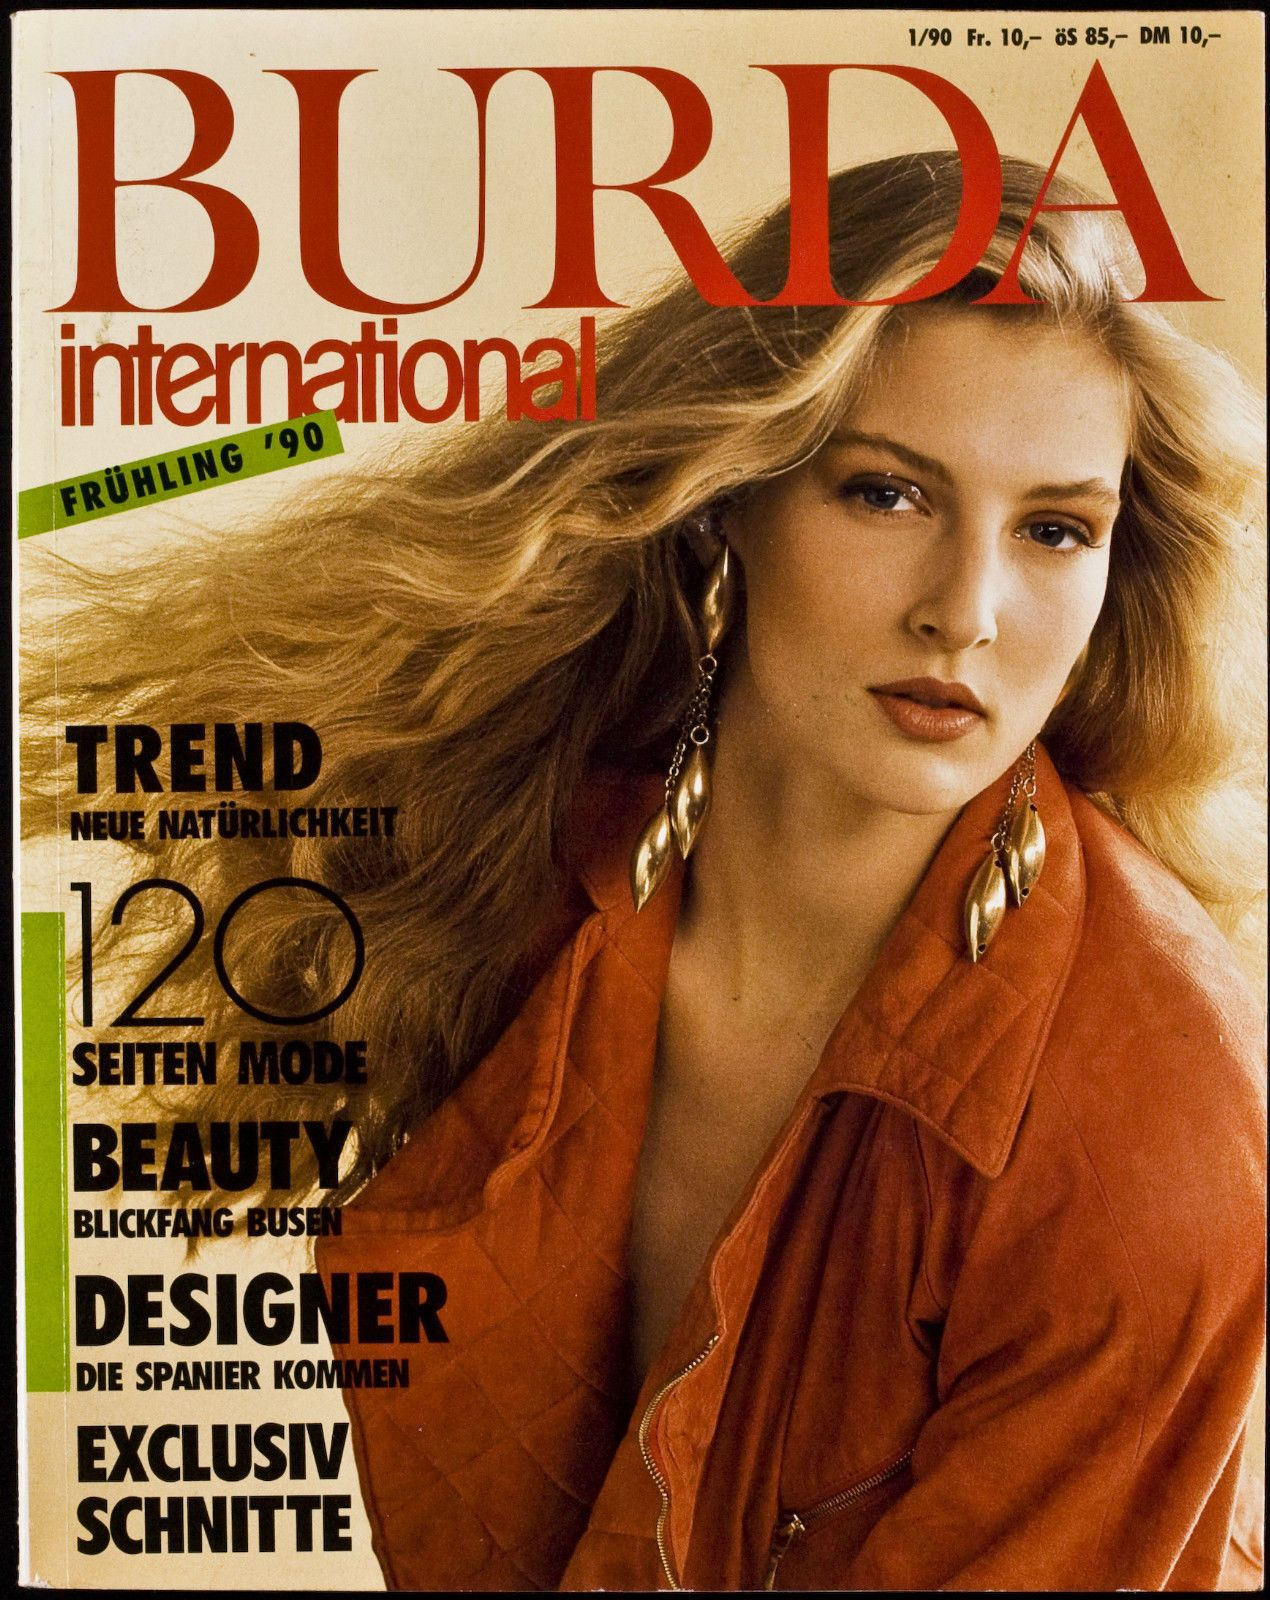 Burda International F 1/90 in Libros, revistas y cómics, Revistas, Moda y estilo de vida | eBay